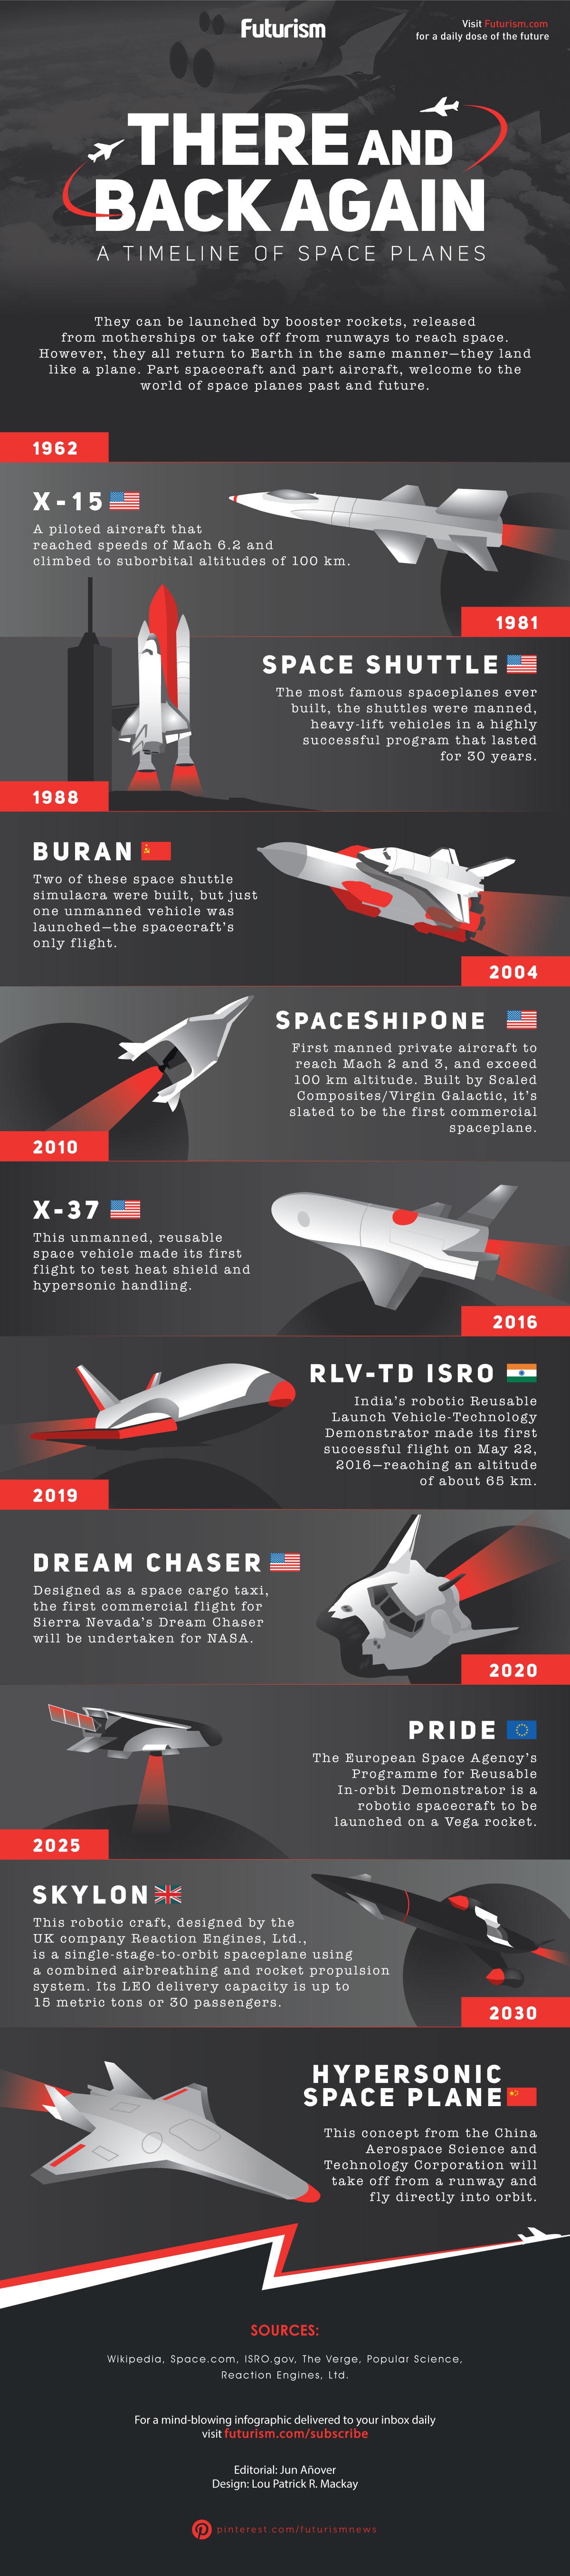 The Past And Future Of Space Planes - Infographic